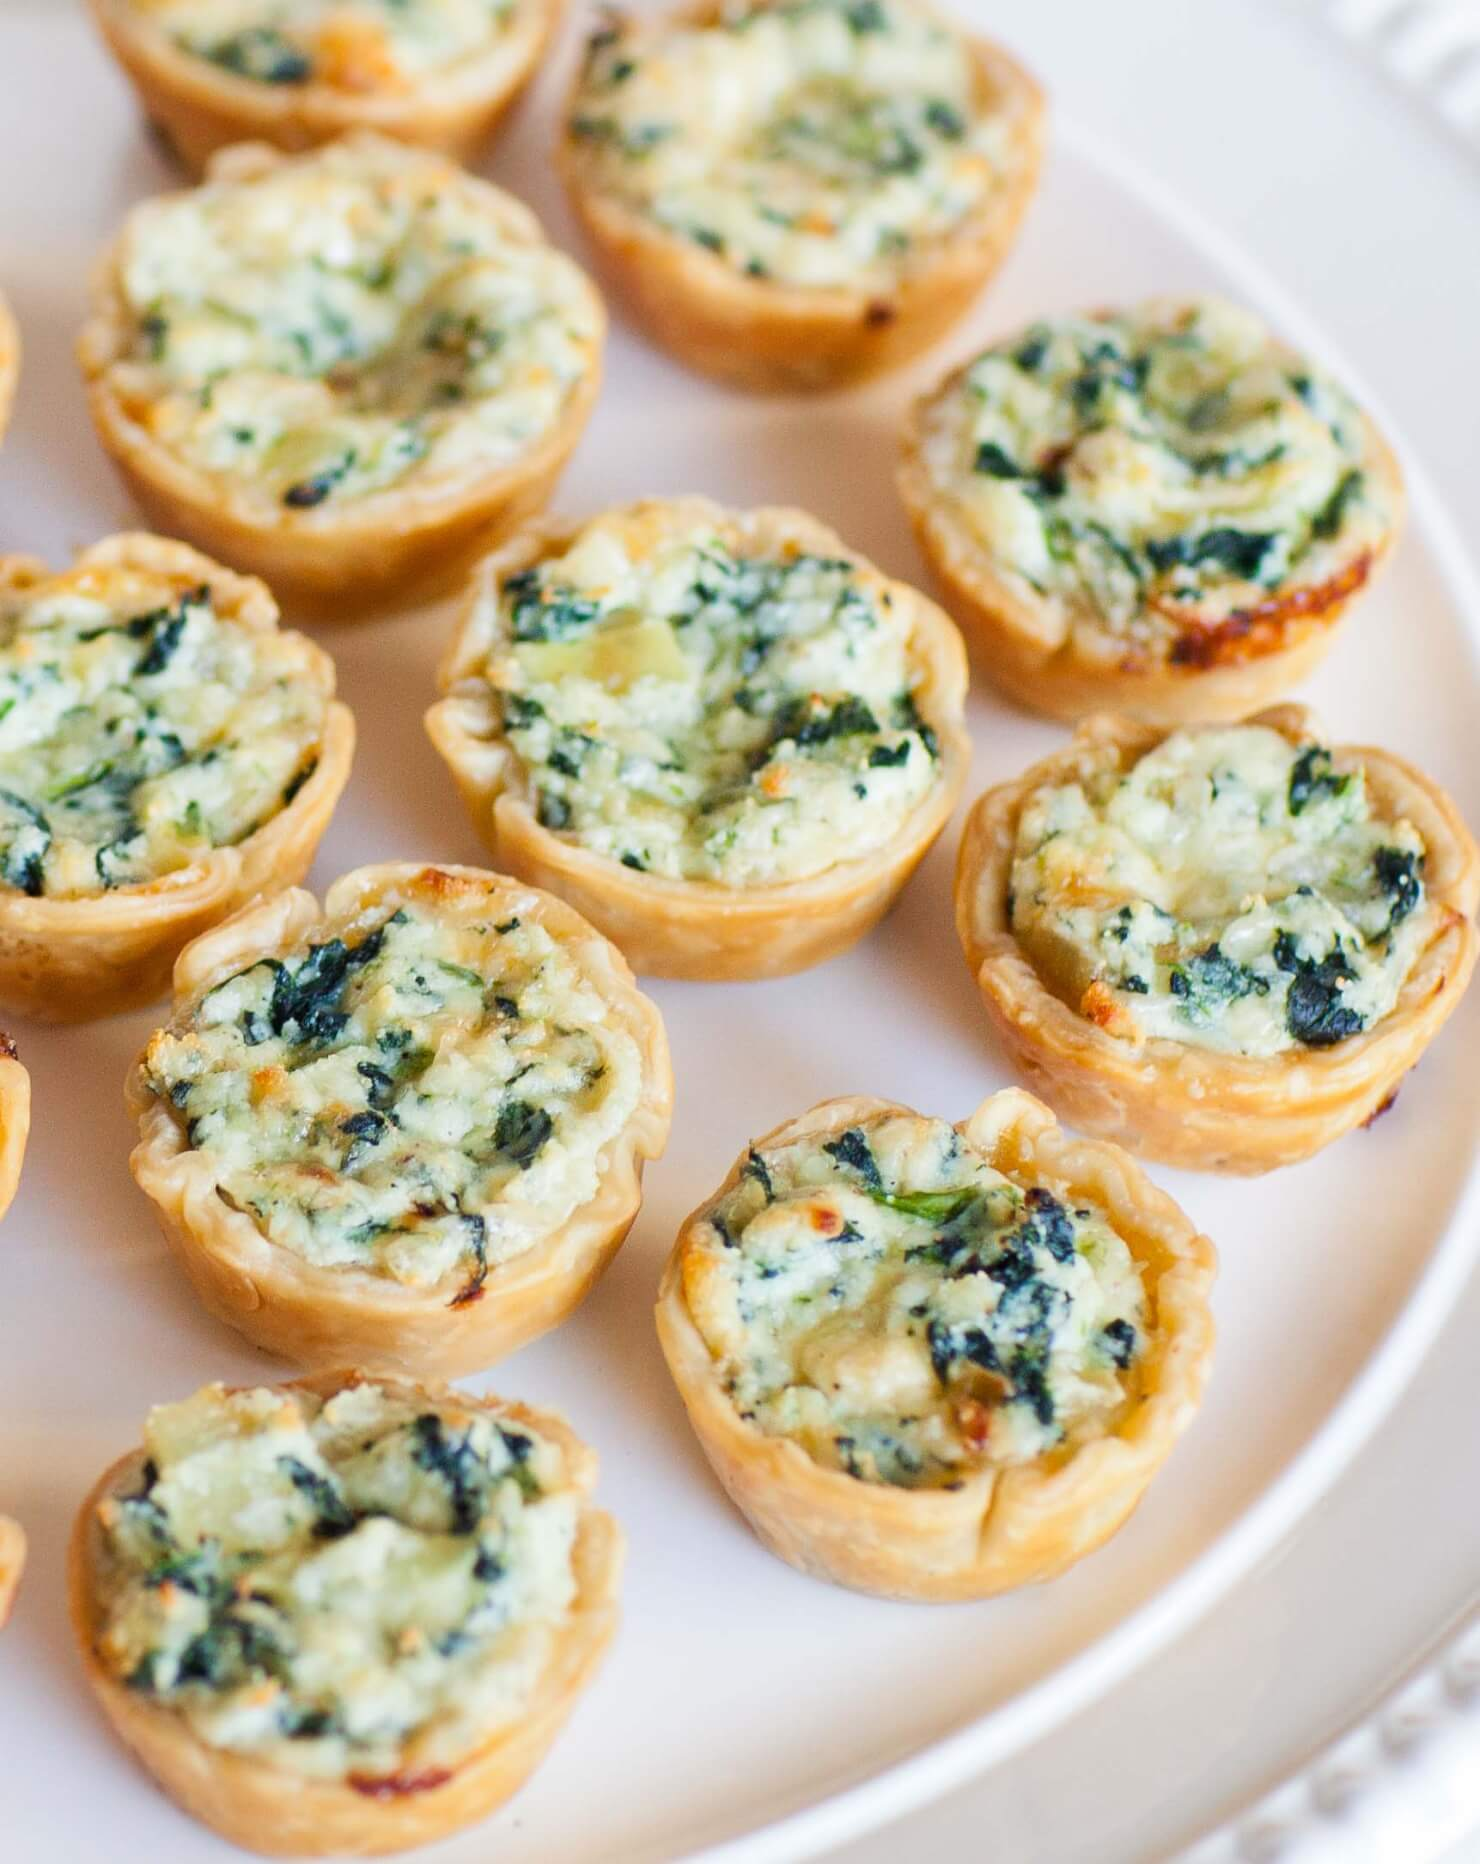 Petite Quiche And Ricotta Canapes Tatyanas Everyday Food - Canapes